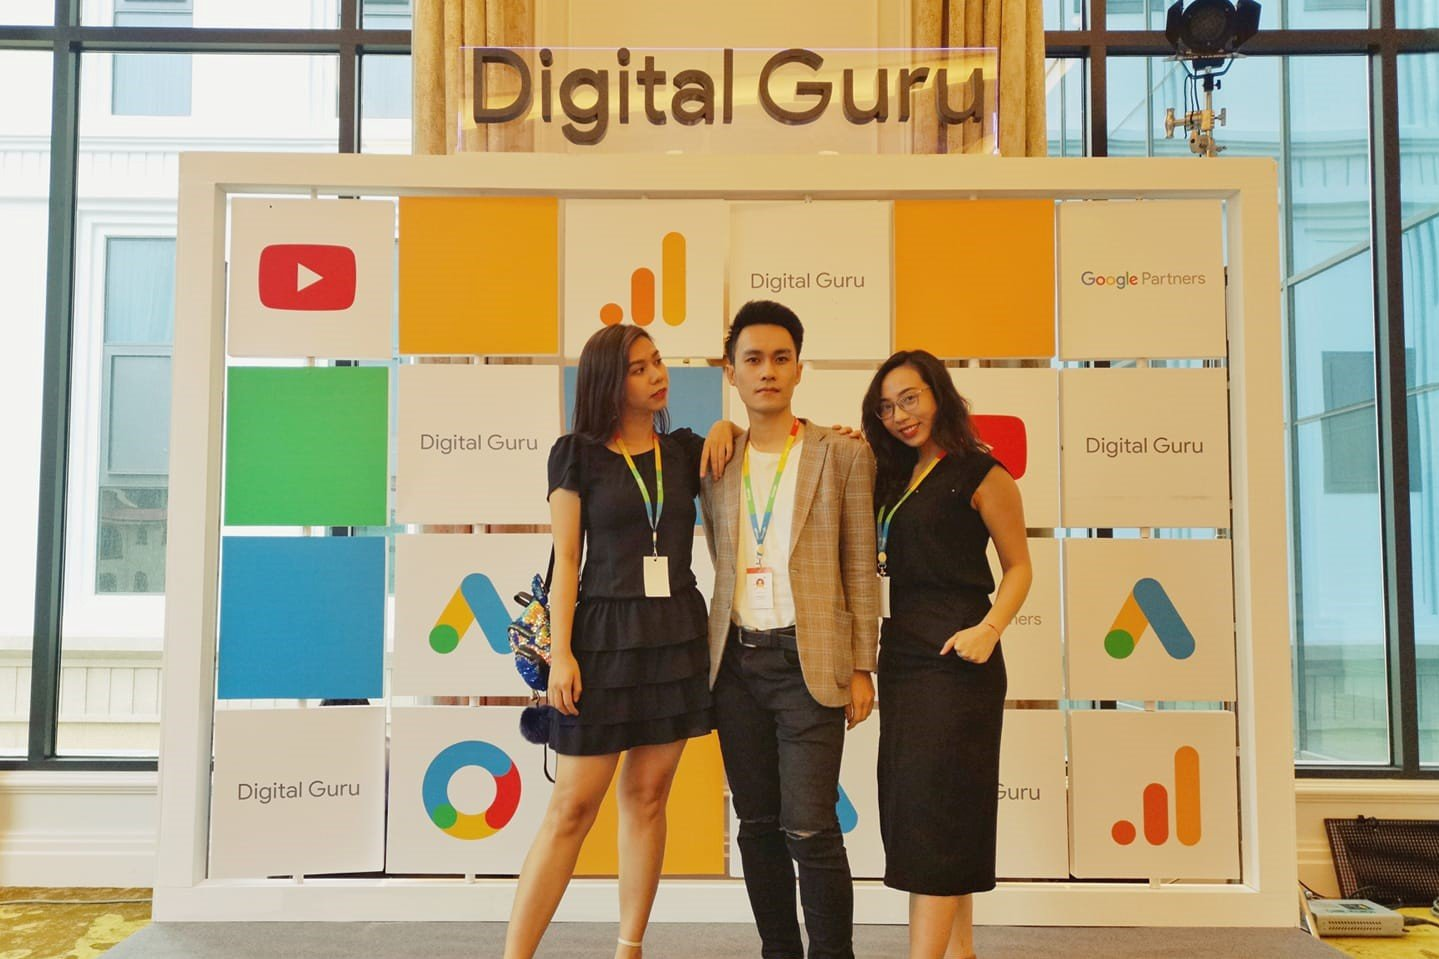 Google Digital Guru 2019